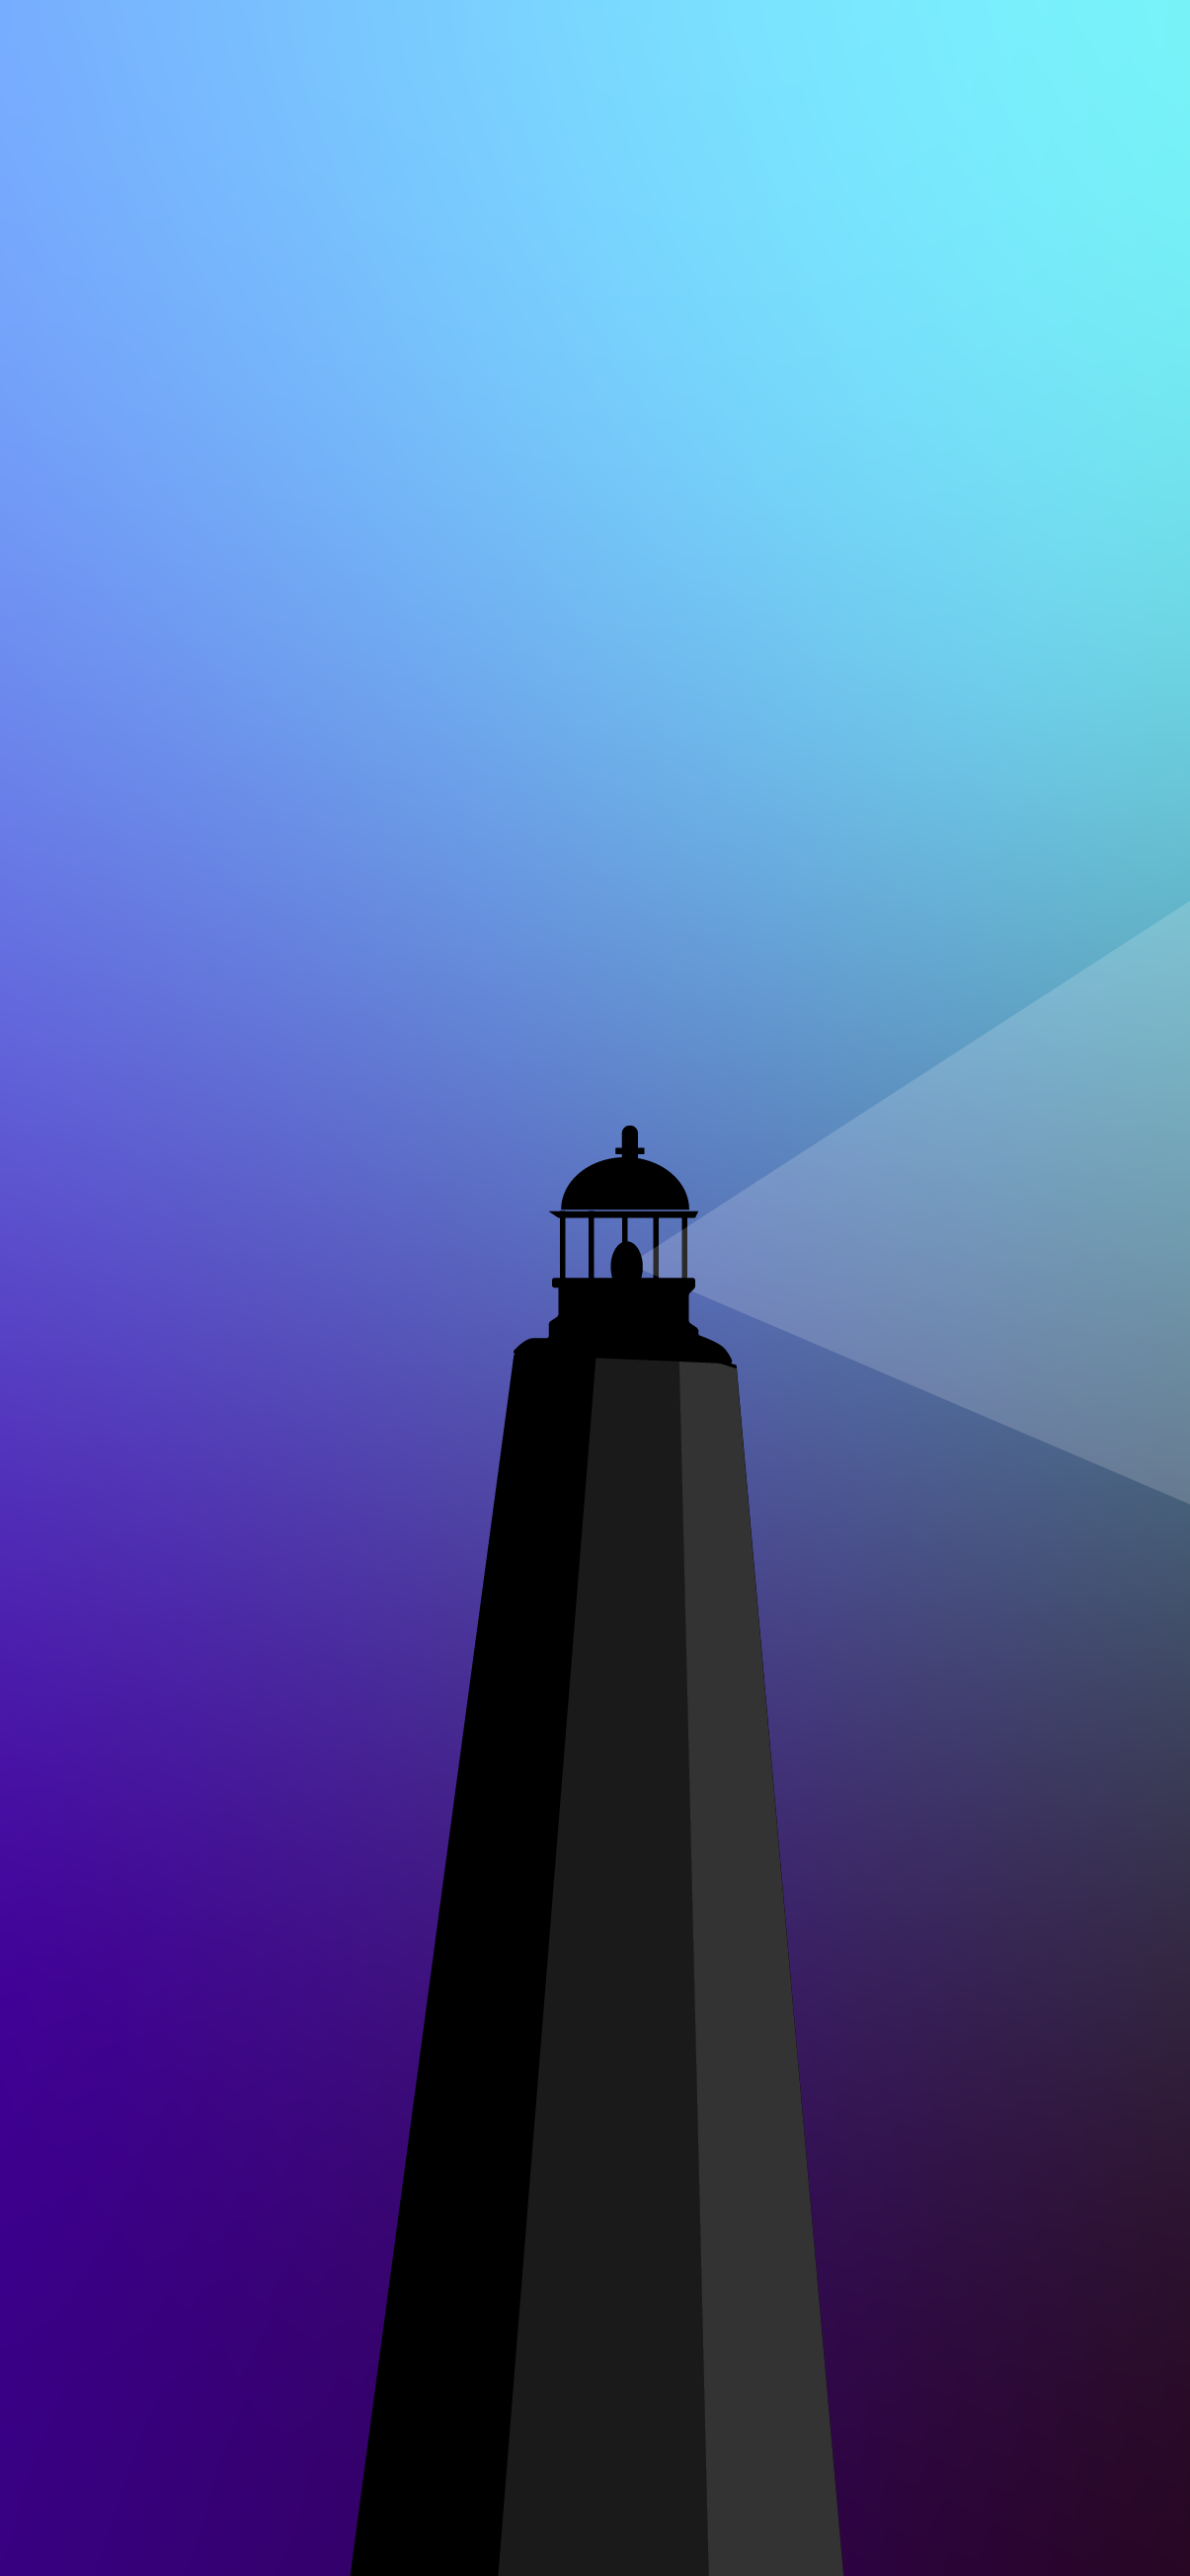 lighthouse minimalist and cool phone wallpaper hd 4k